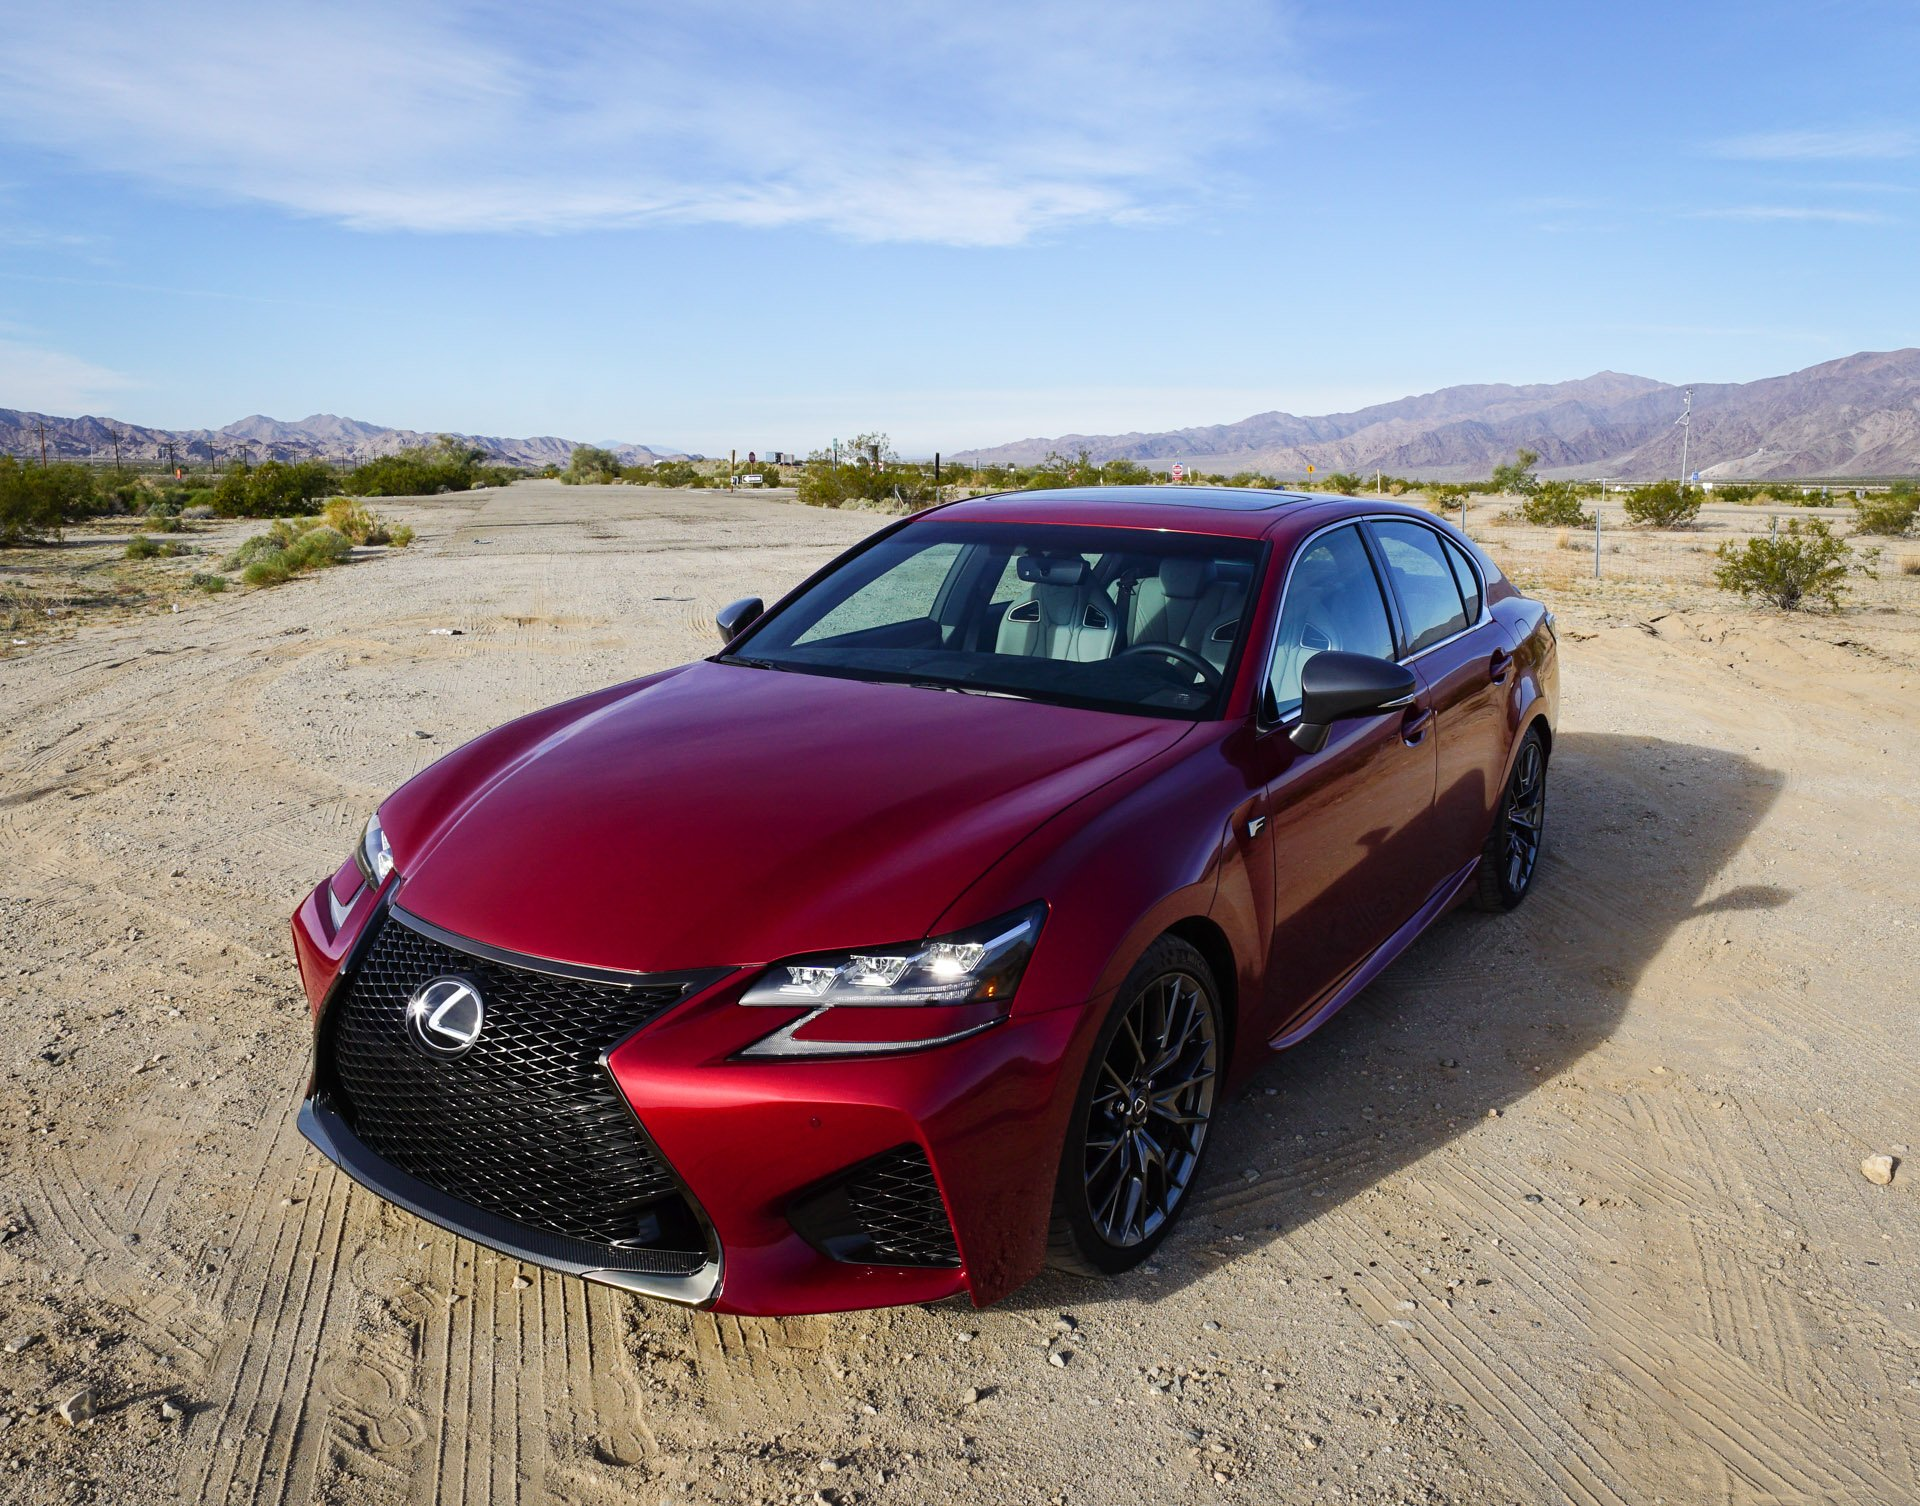 first drive review 2016 lexus gs f 95 octane. Black Bedroom Furniture Sets. Home Design Ideas